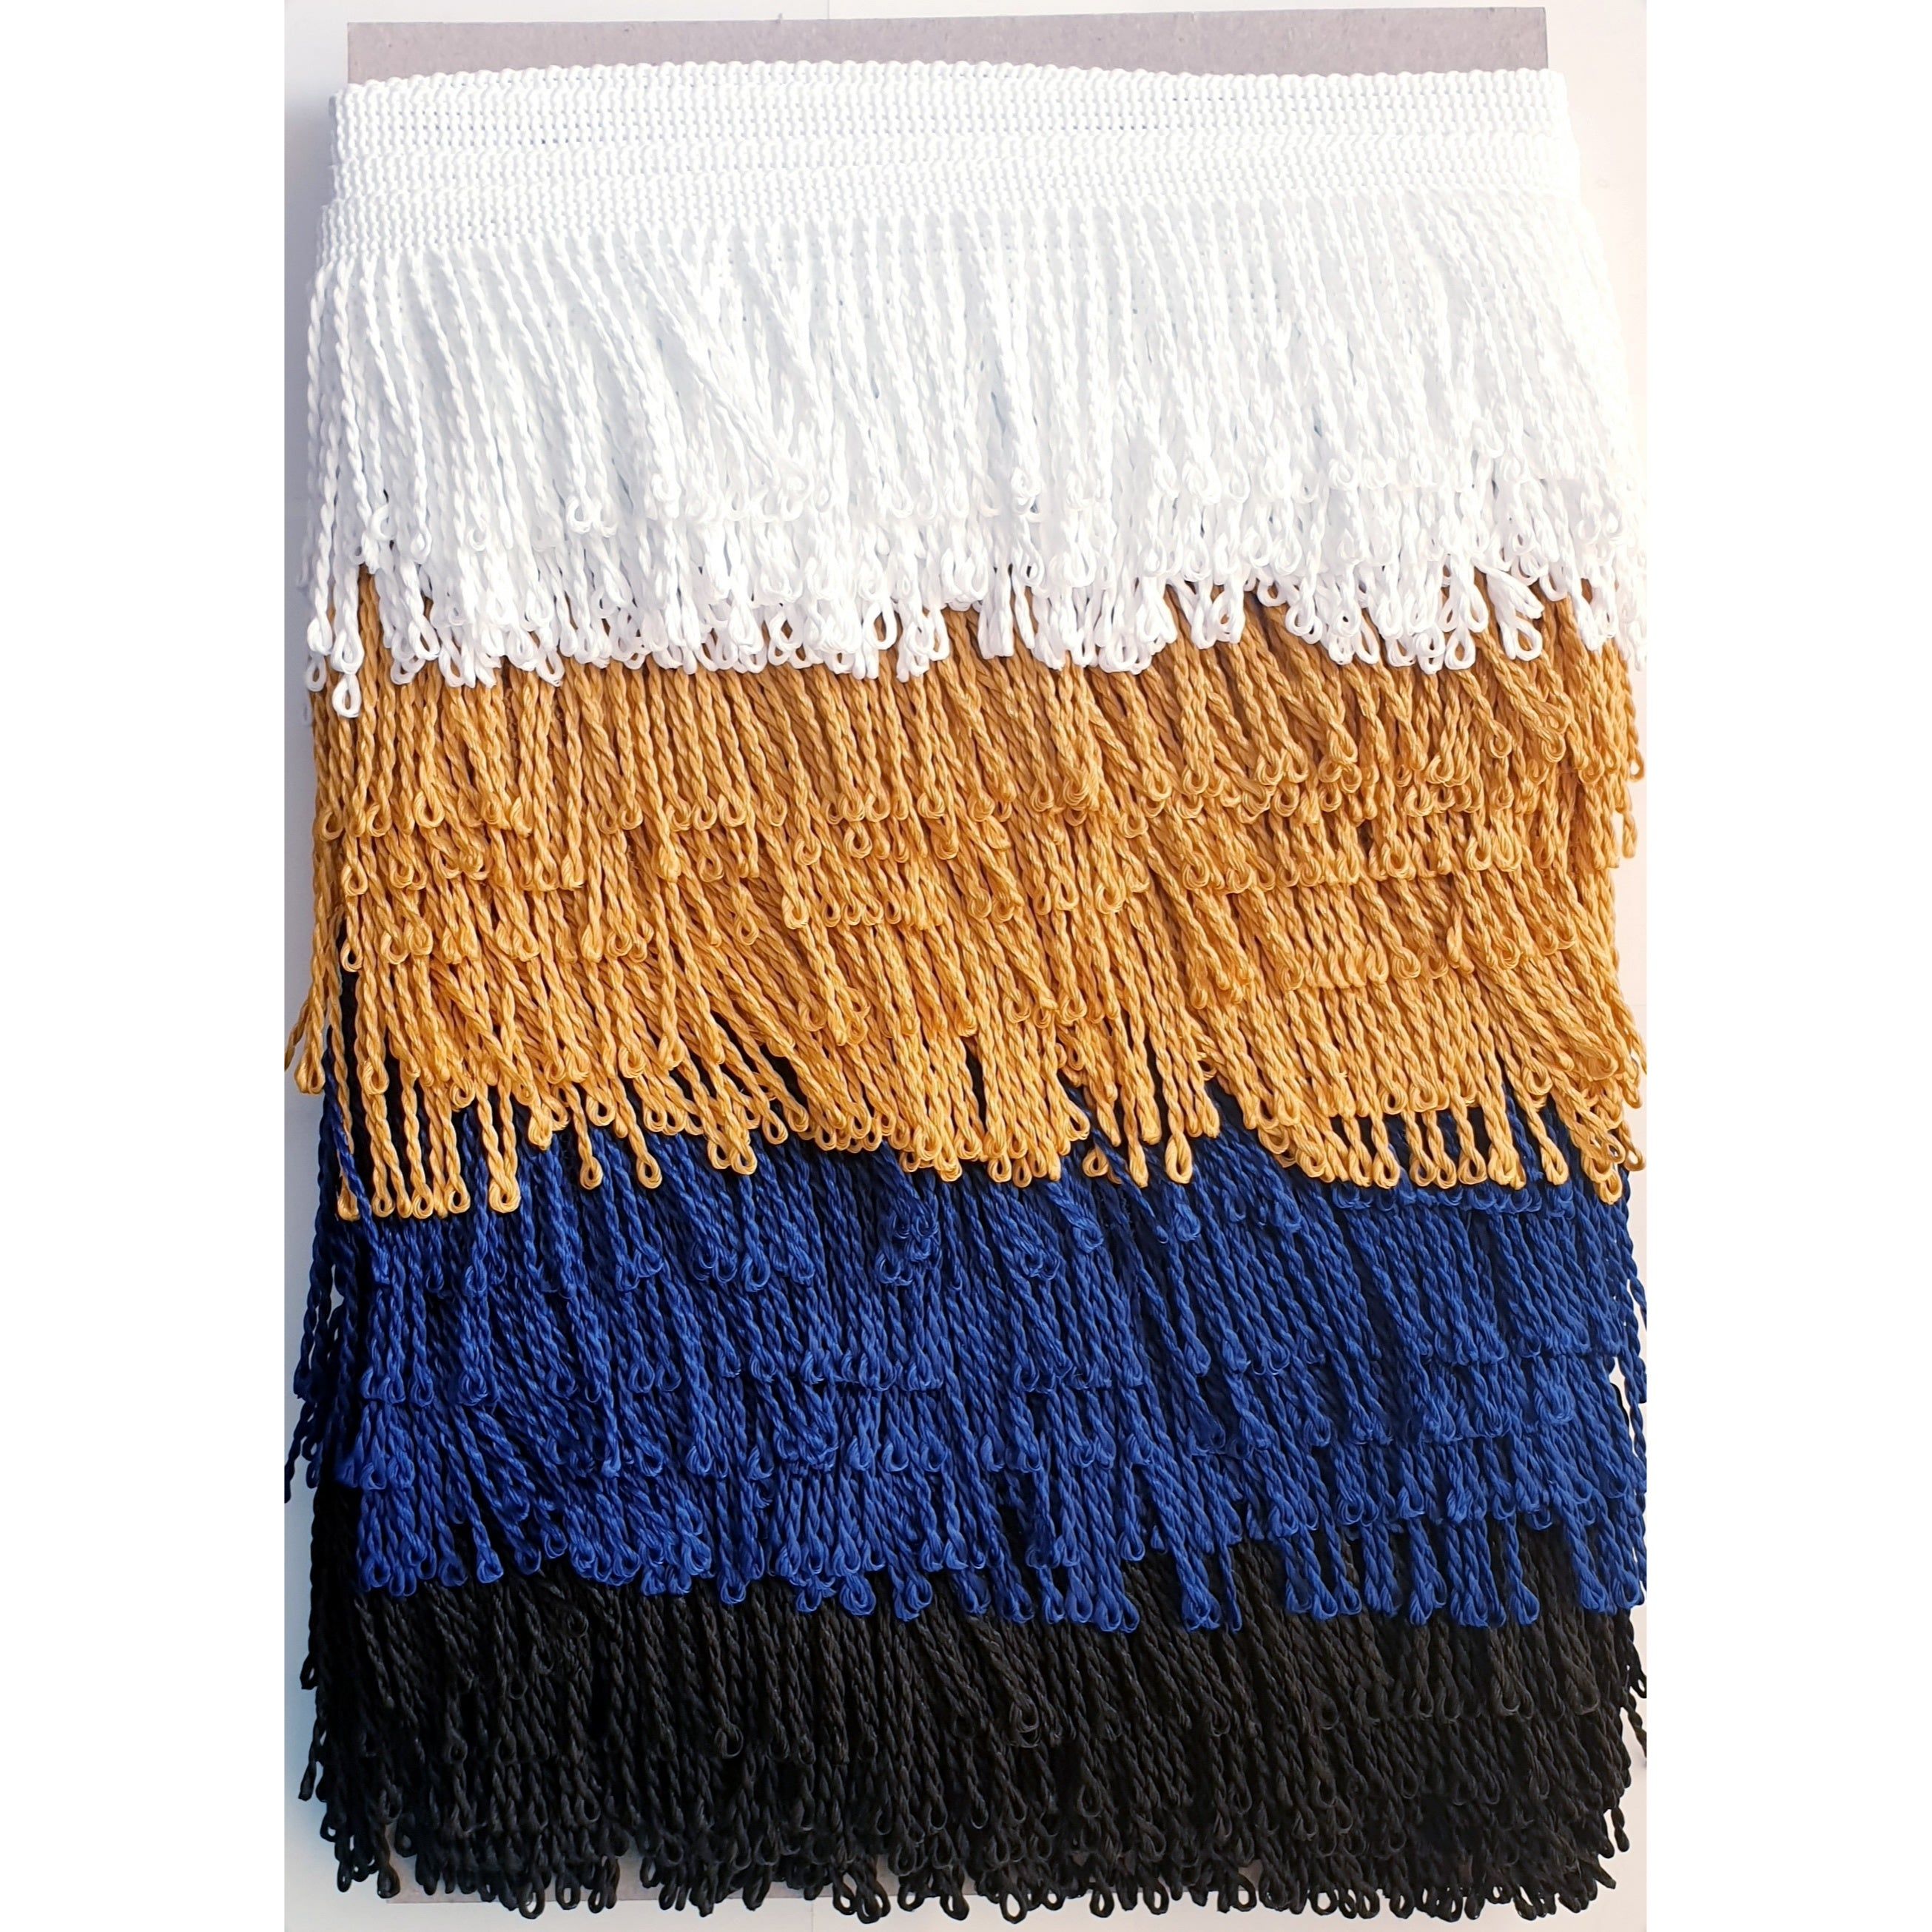 20m Bullion Fringe Bundle - Free Worldwide Shipping- Sew Royal US